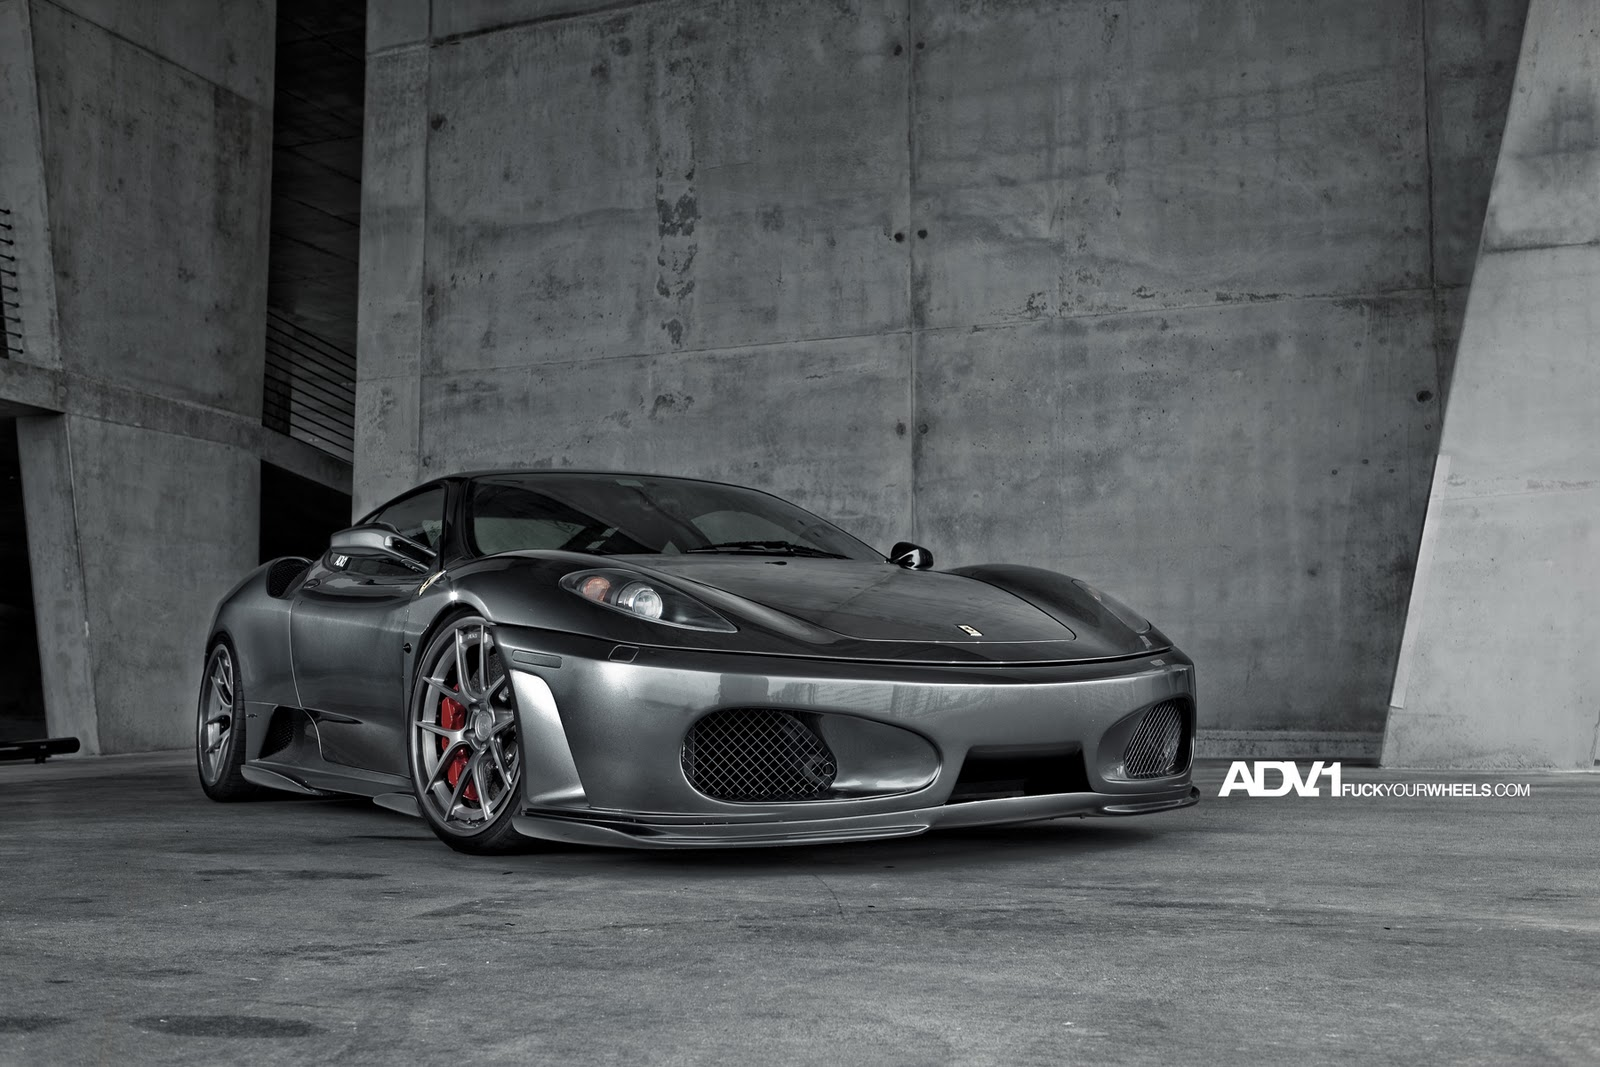 ADV1 Wheels Ferrari F430